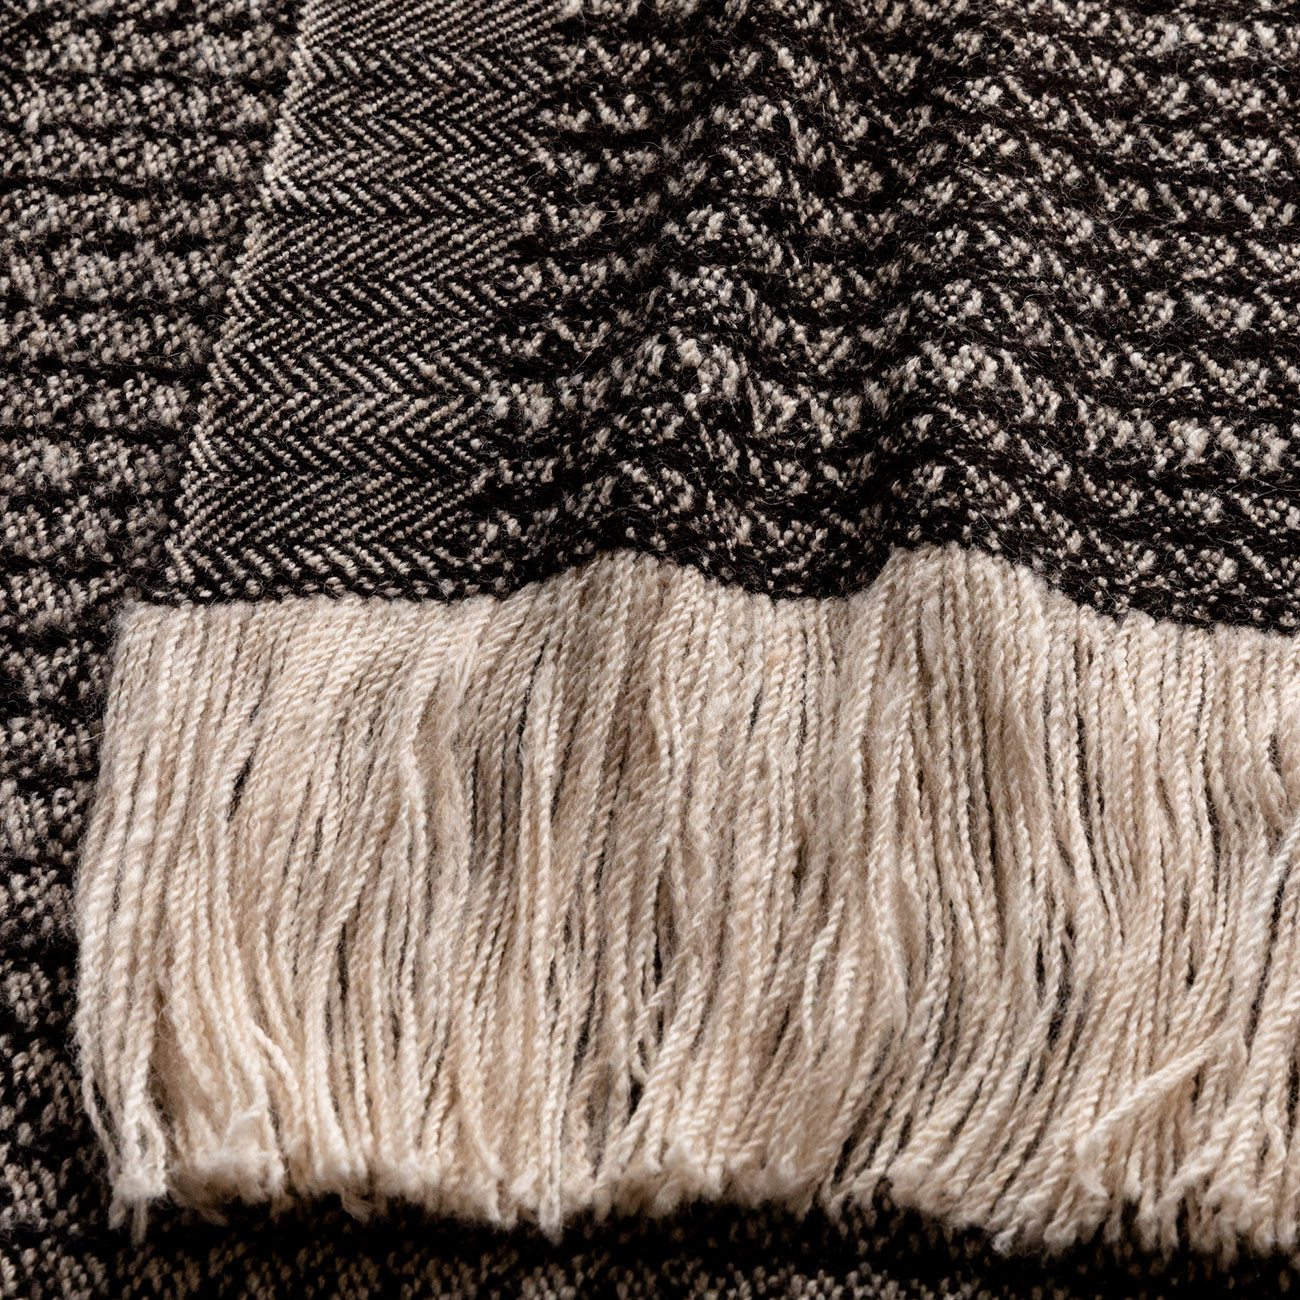 Handwoven Sycamore Wide Scarf - Natural Black and Cream Alpaca - 1